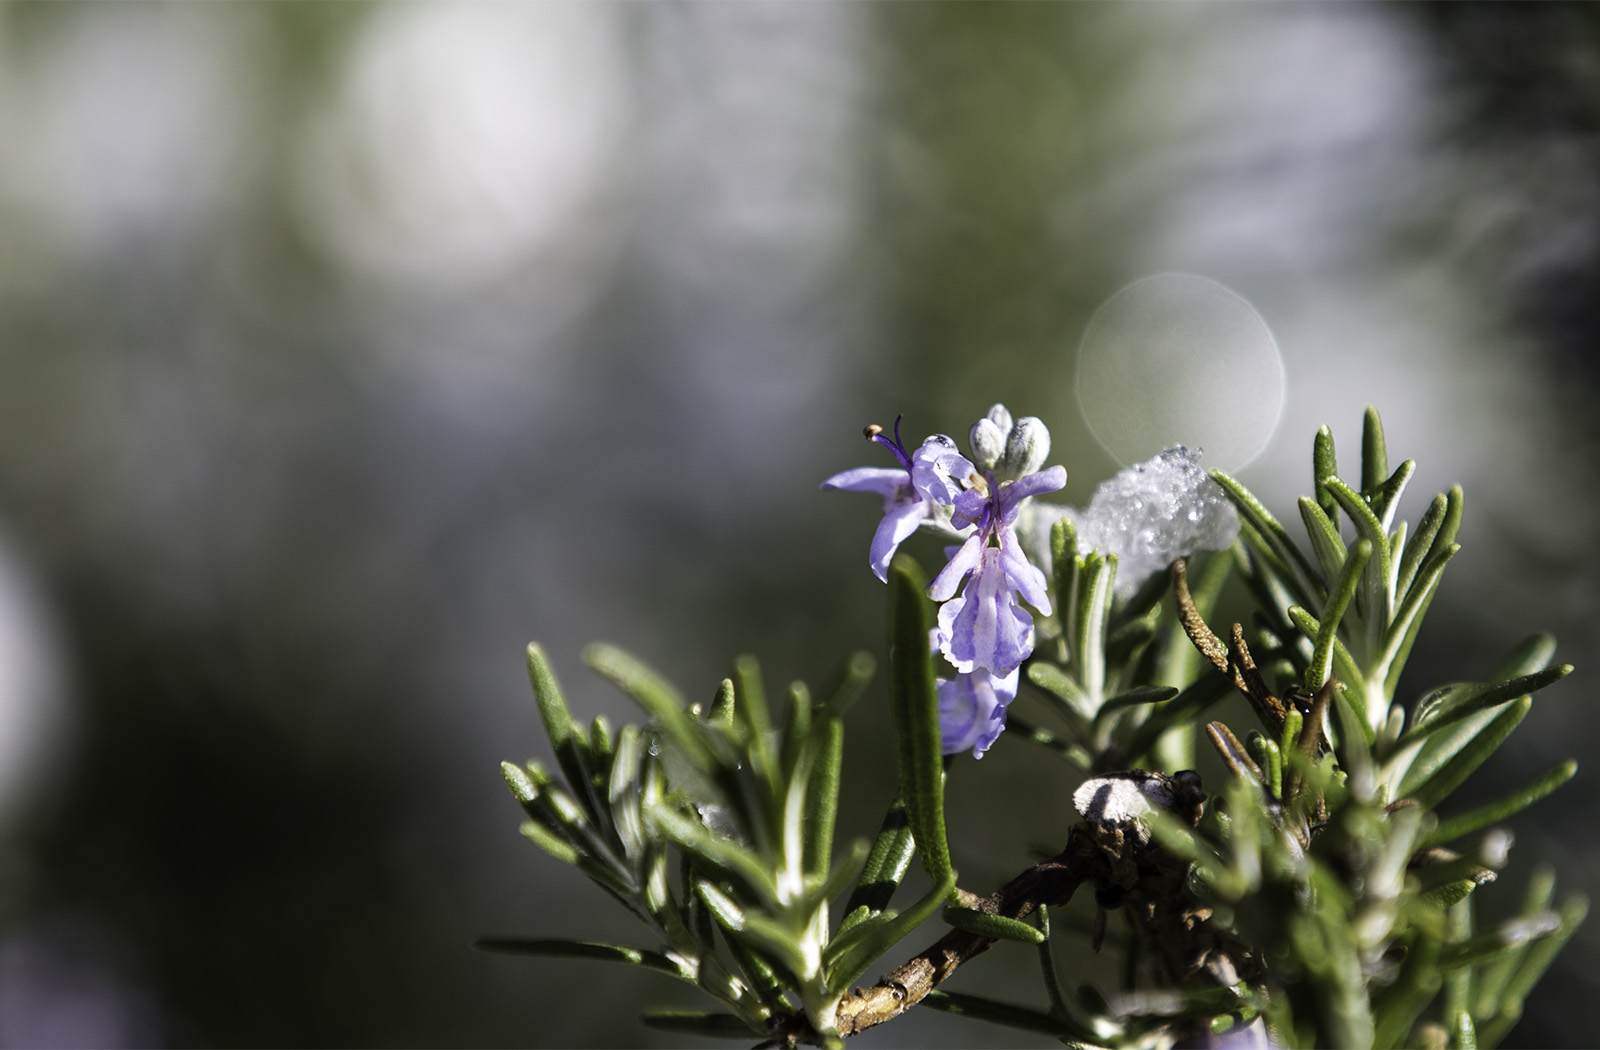 Rosemary in bloom. Photo © Andrée Fredette